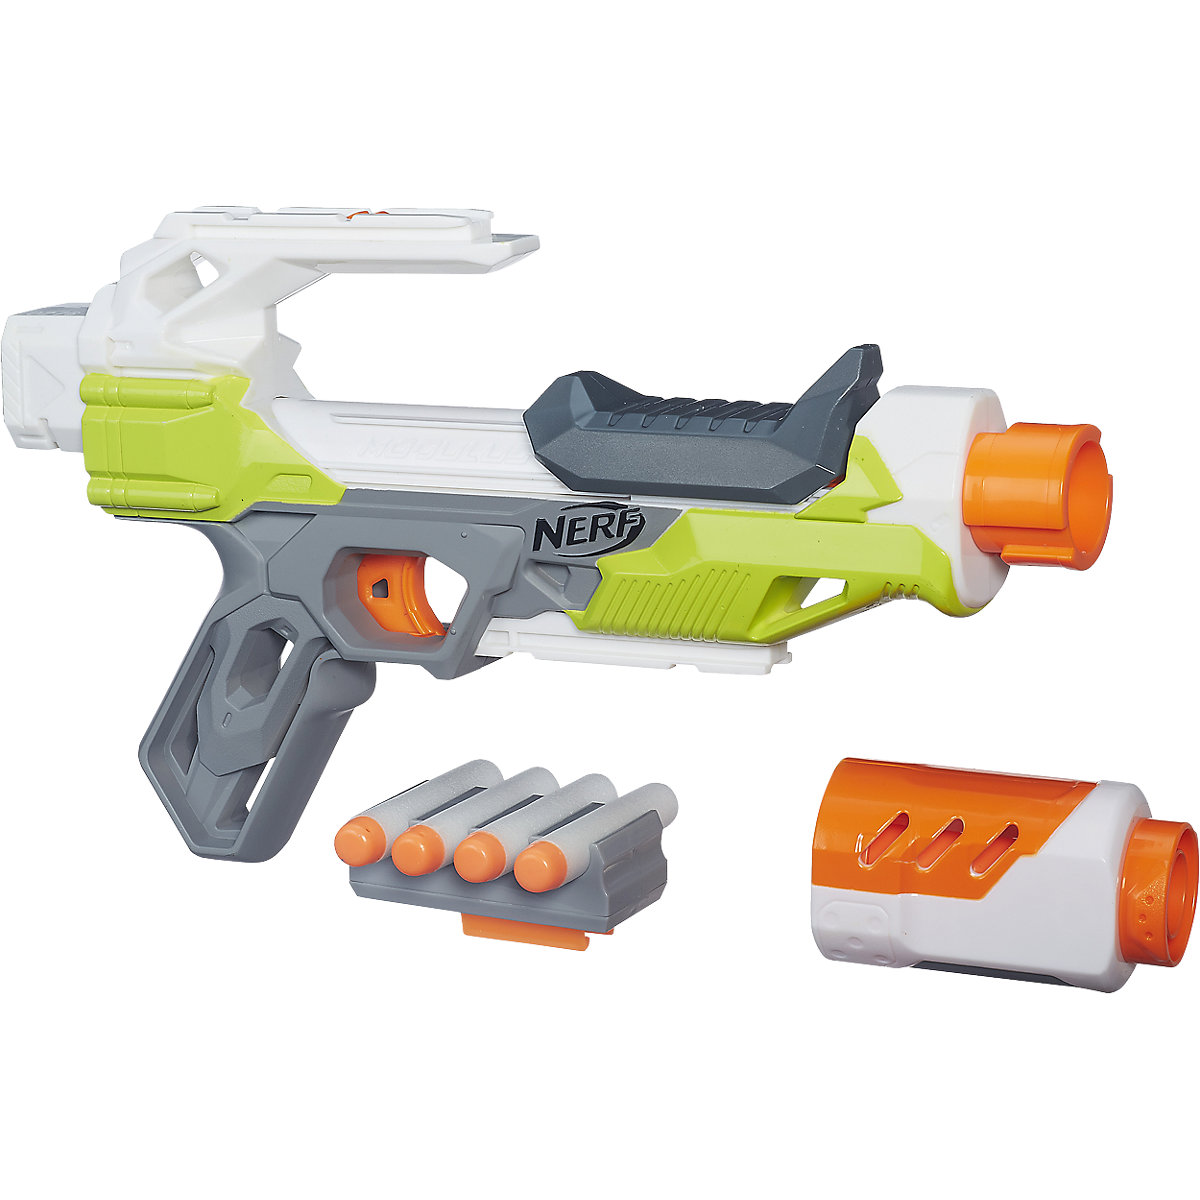 Toy Guns NERF 4306449 Children Kids Toy Gun Weapon Blasters Boys Shooting games Outdoor play toy guns nerf 3550830 children kids toy gun weapon blasters boys shooting games outdoor play